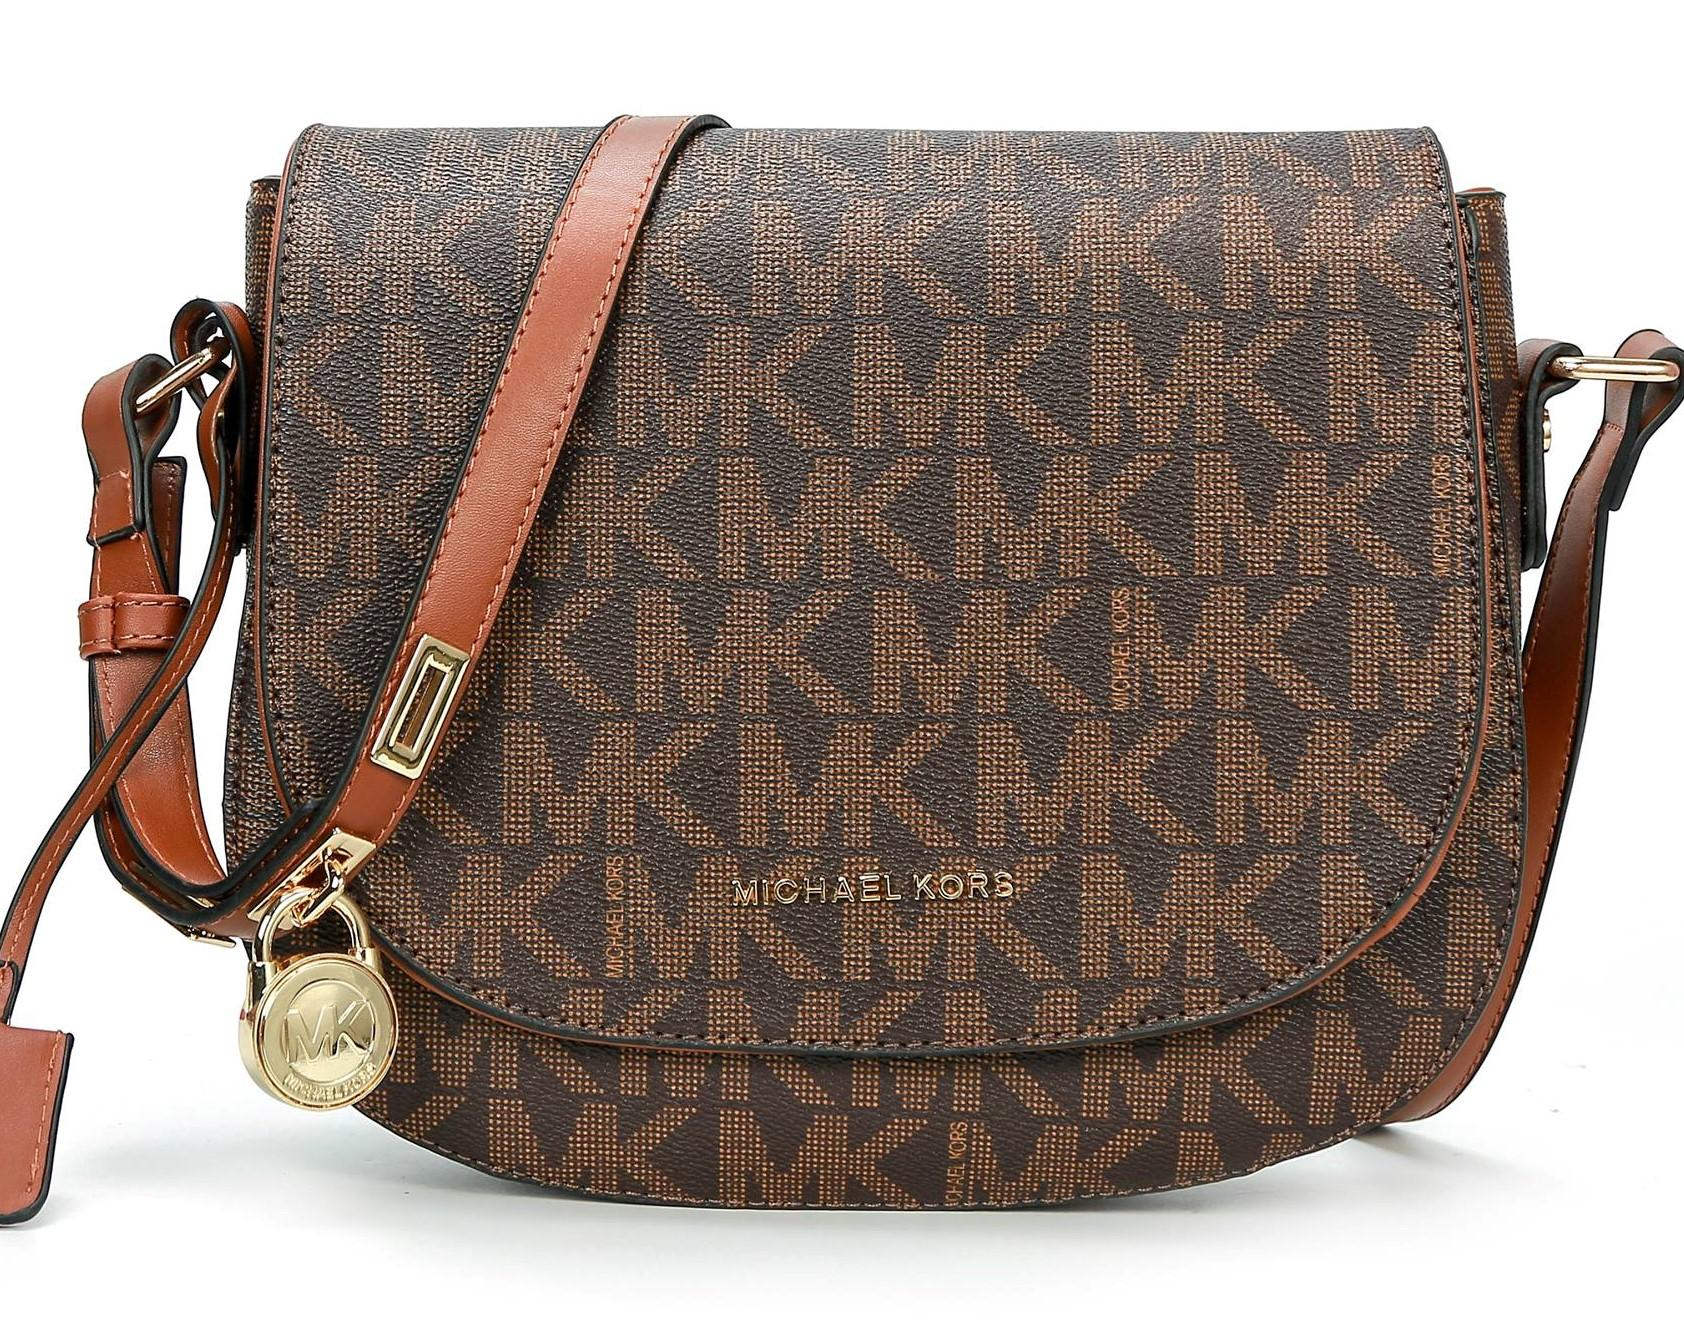 Michael Kors Philippines -Michael Kors Bags for Women for sale - prices    reviews  4f86ce93e4363